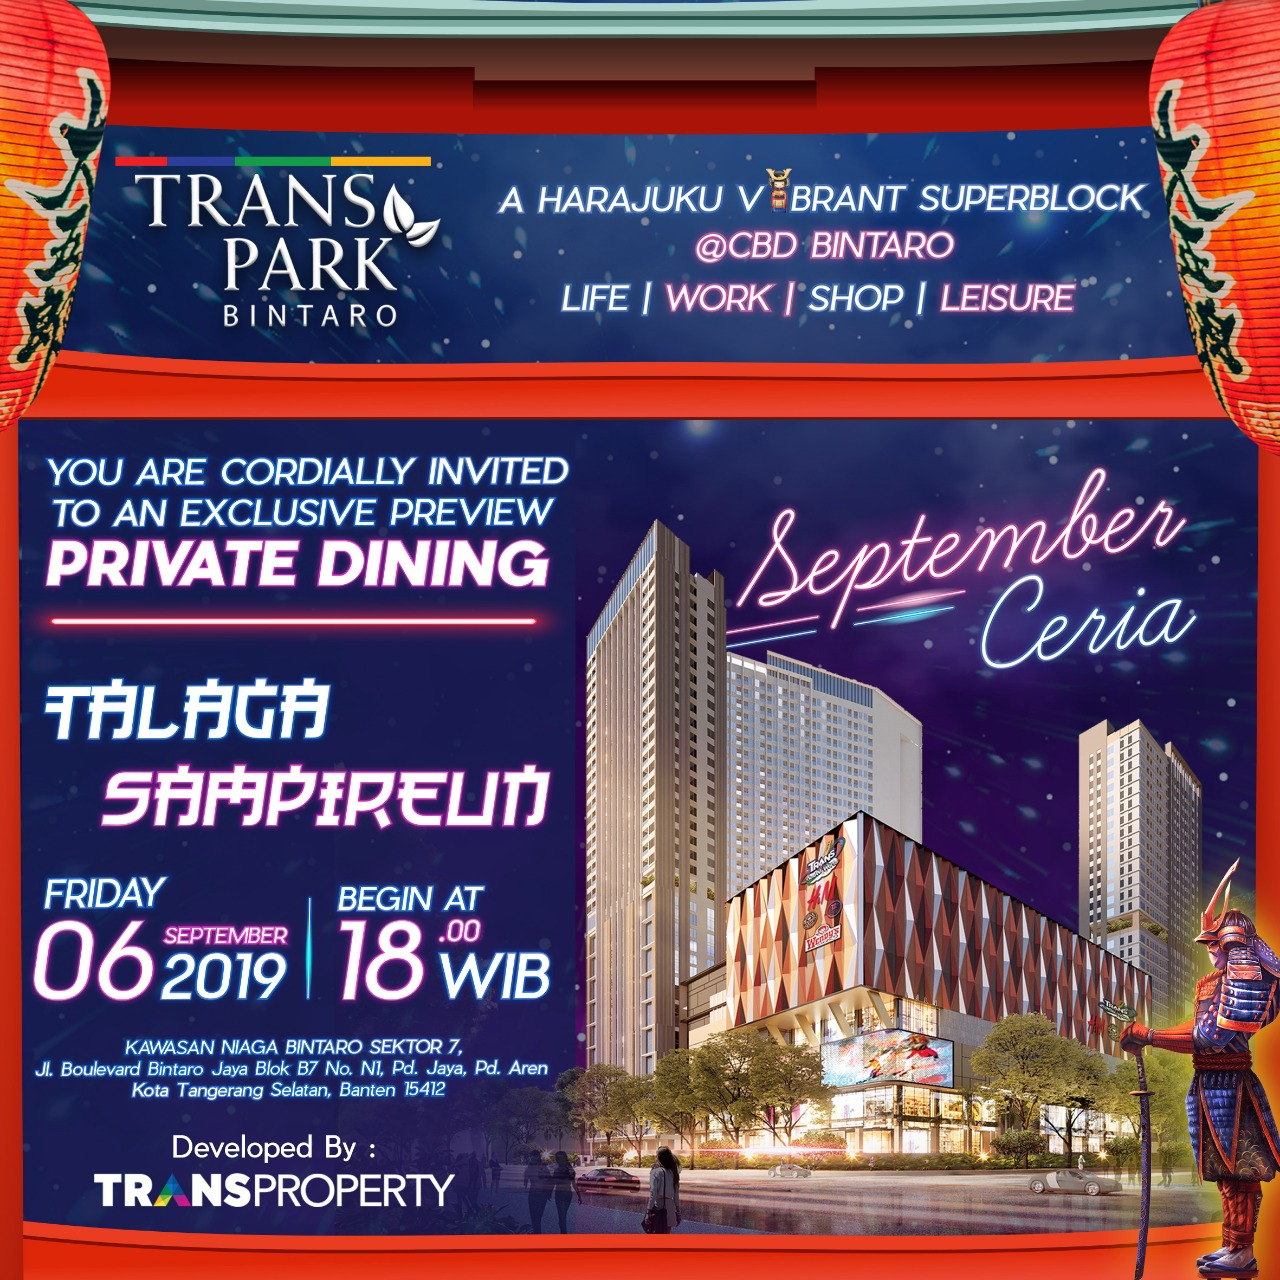 Private Dining Transpark Bintaro 6 September 2019